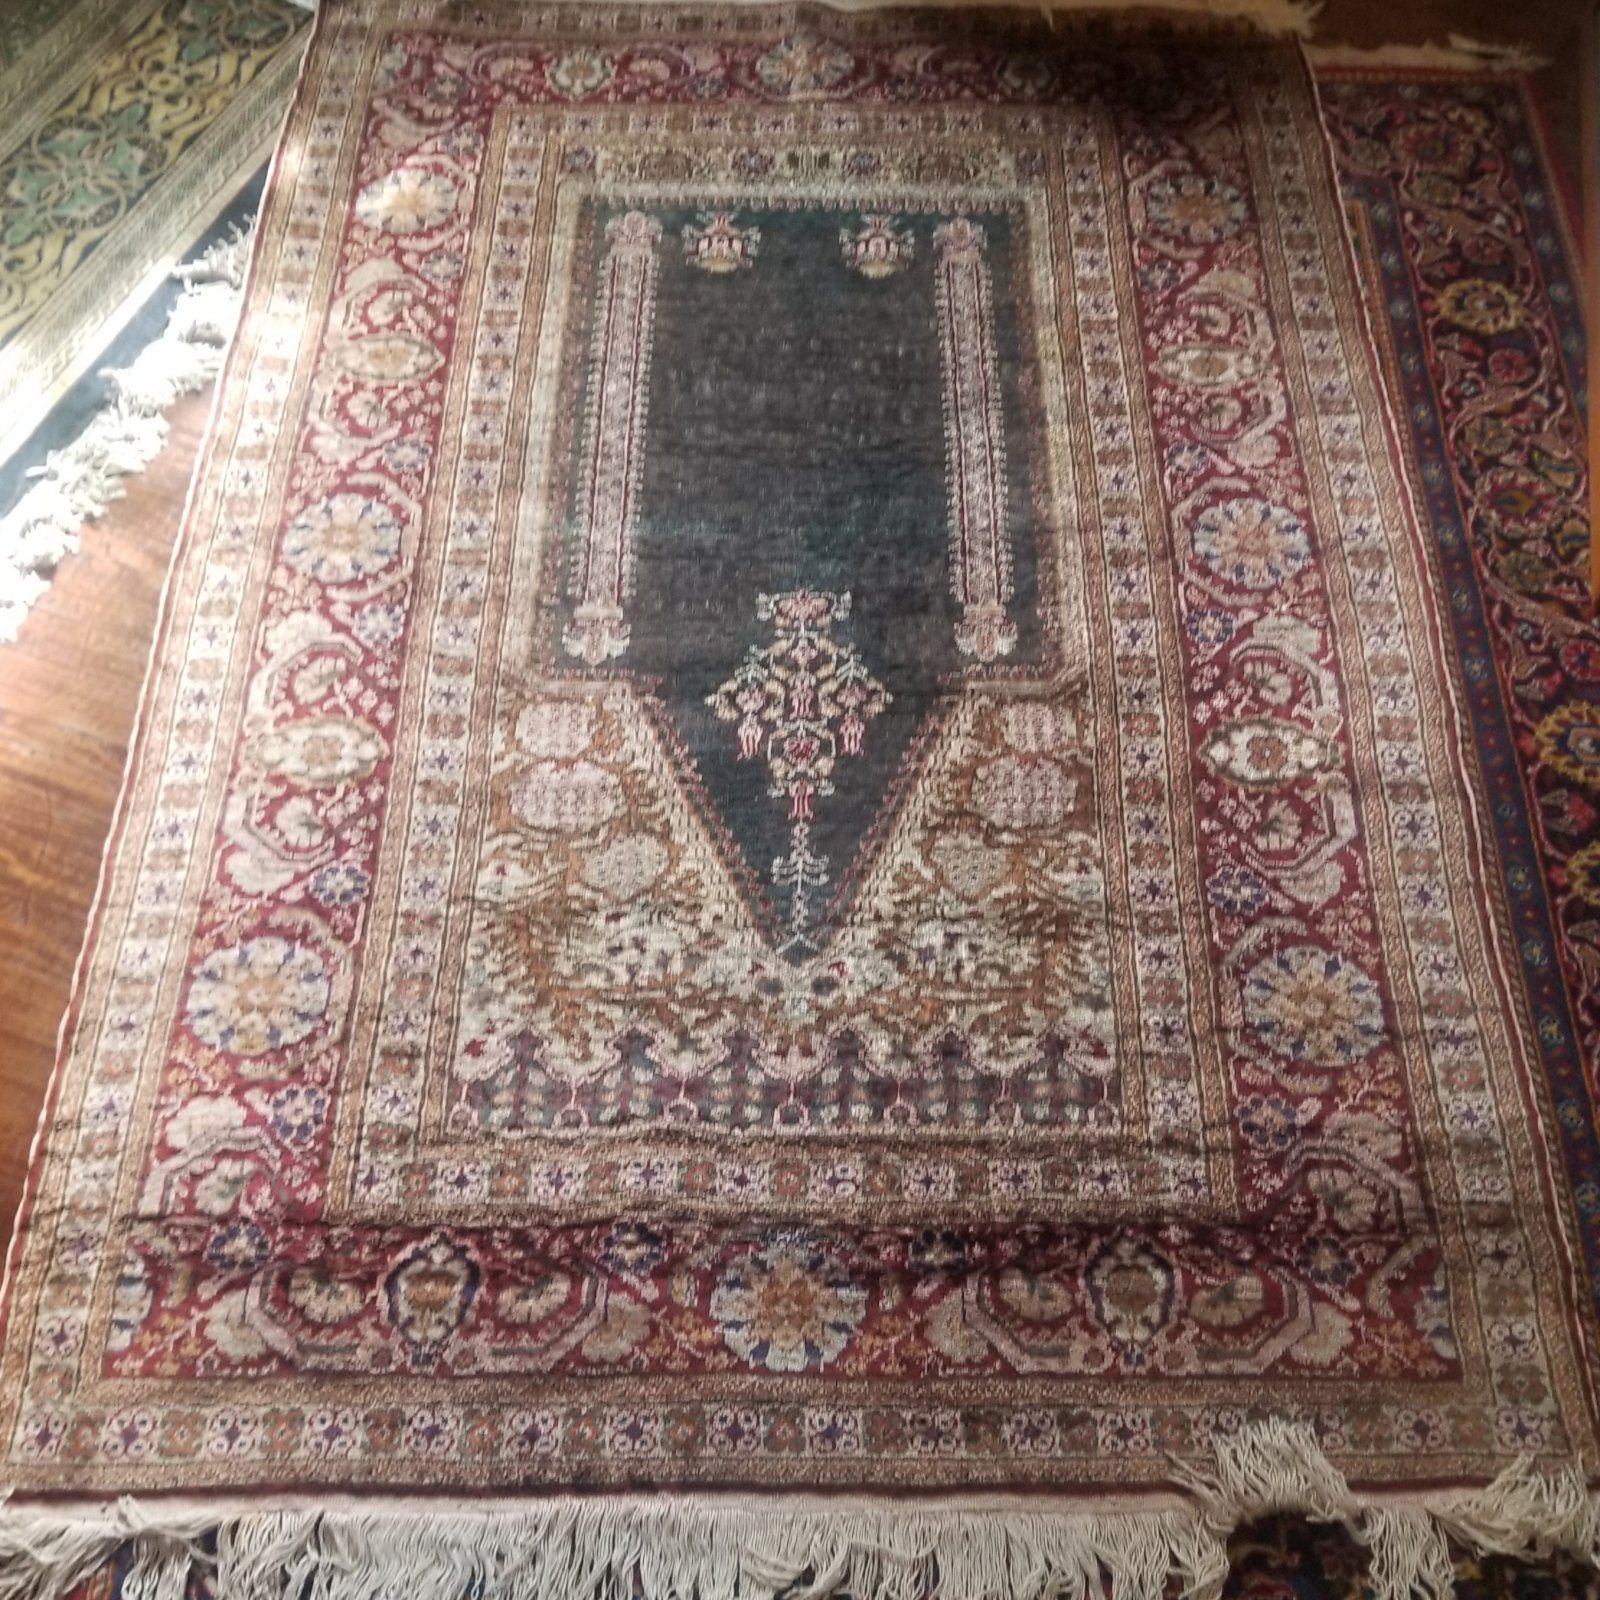 6'6 X 4'1 Turkish mercerized cotton prayer rug Circa 1950-1960 dark green field with dark red and cream borders with accents of gold brown and other colors.   SXY